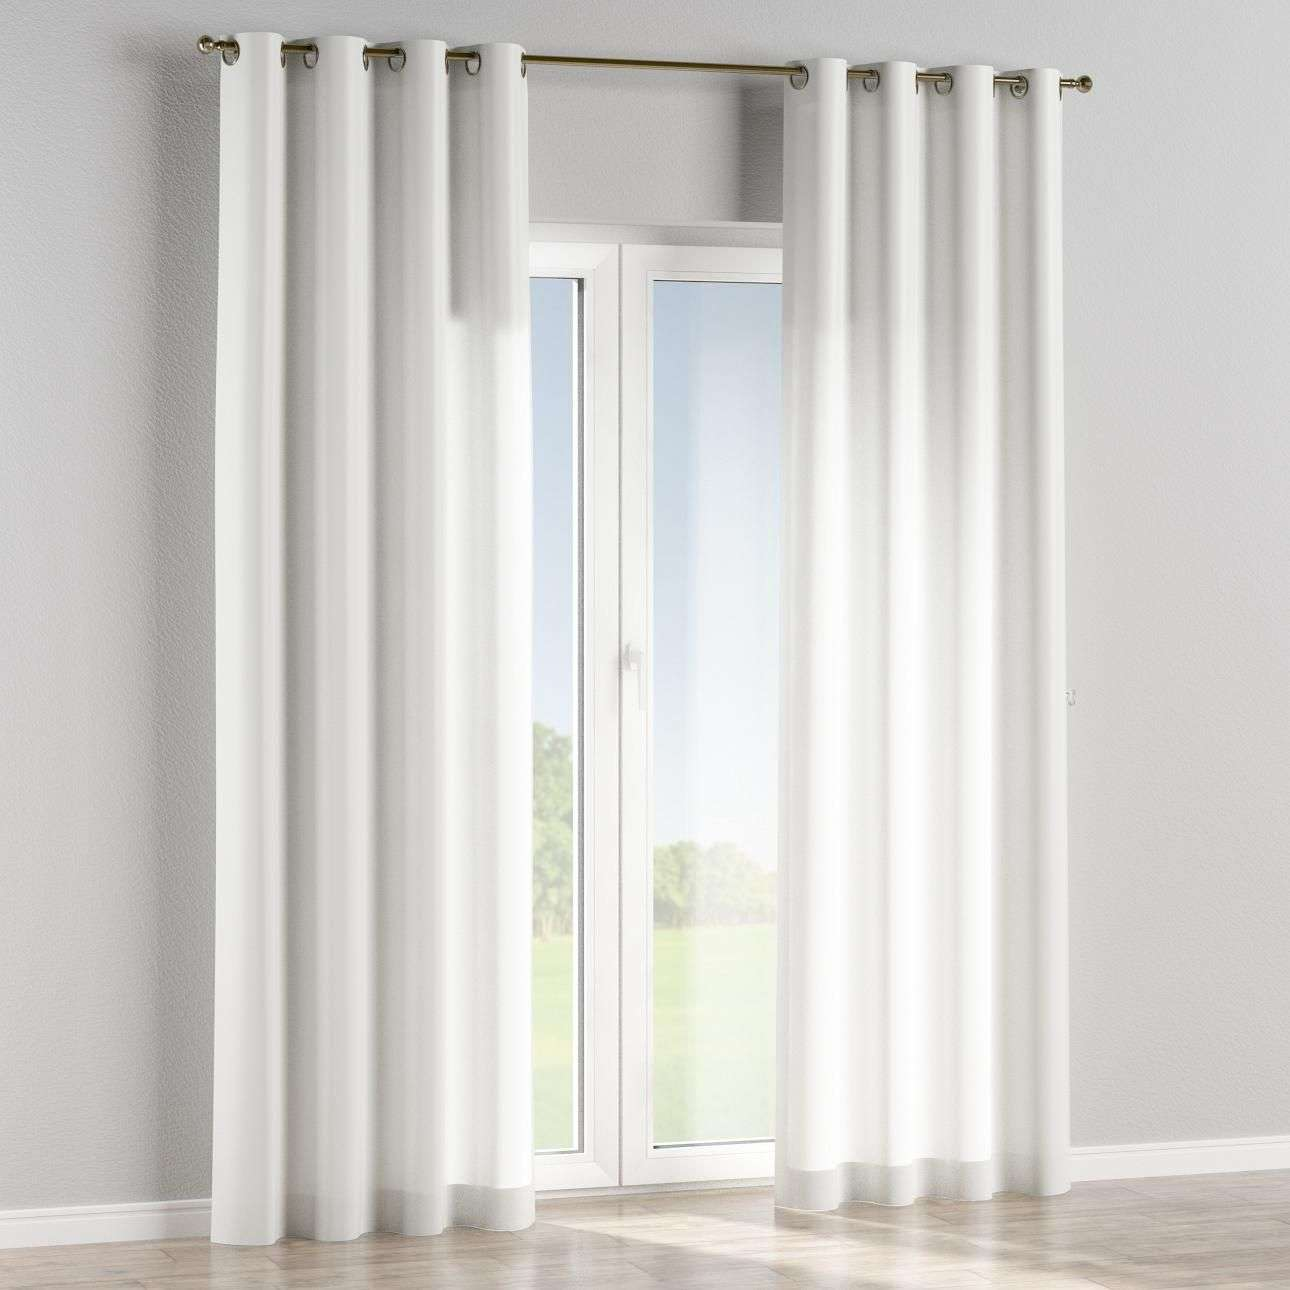 Eyelet lined curtains in collection Rustica, fabric: 138-22